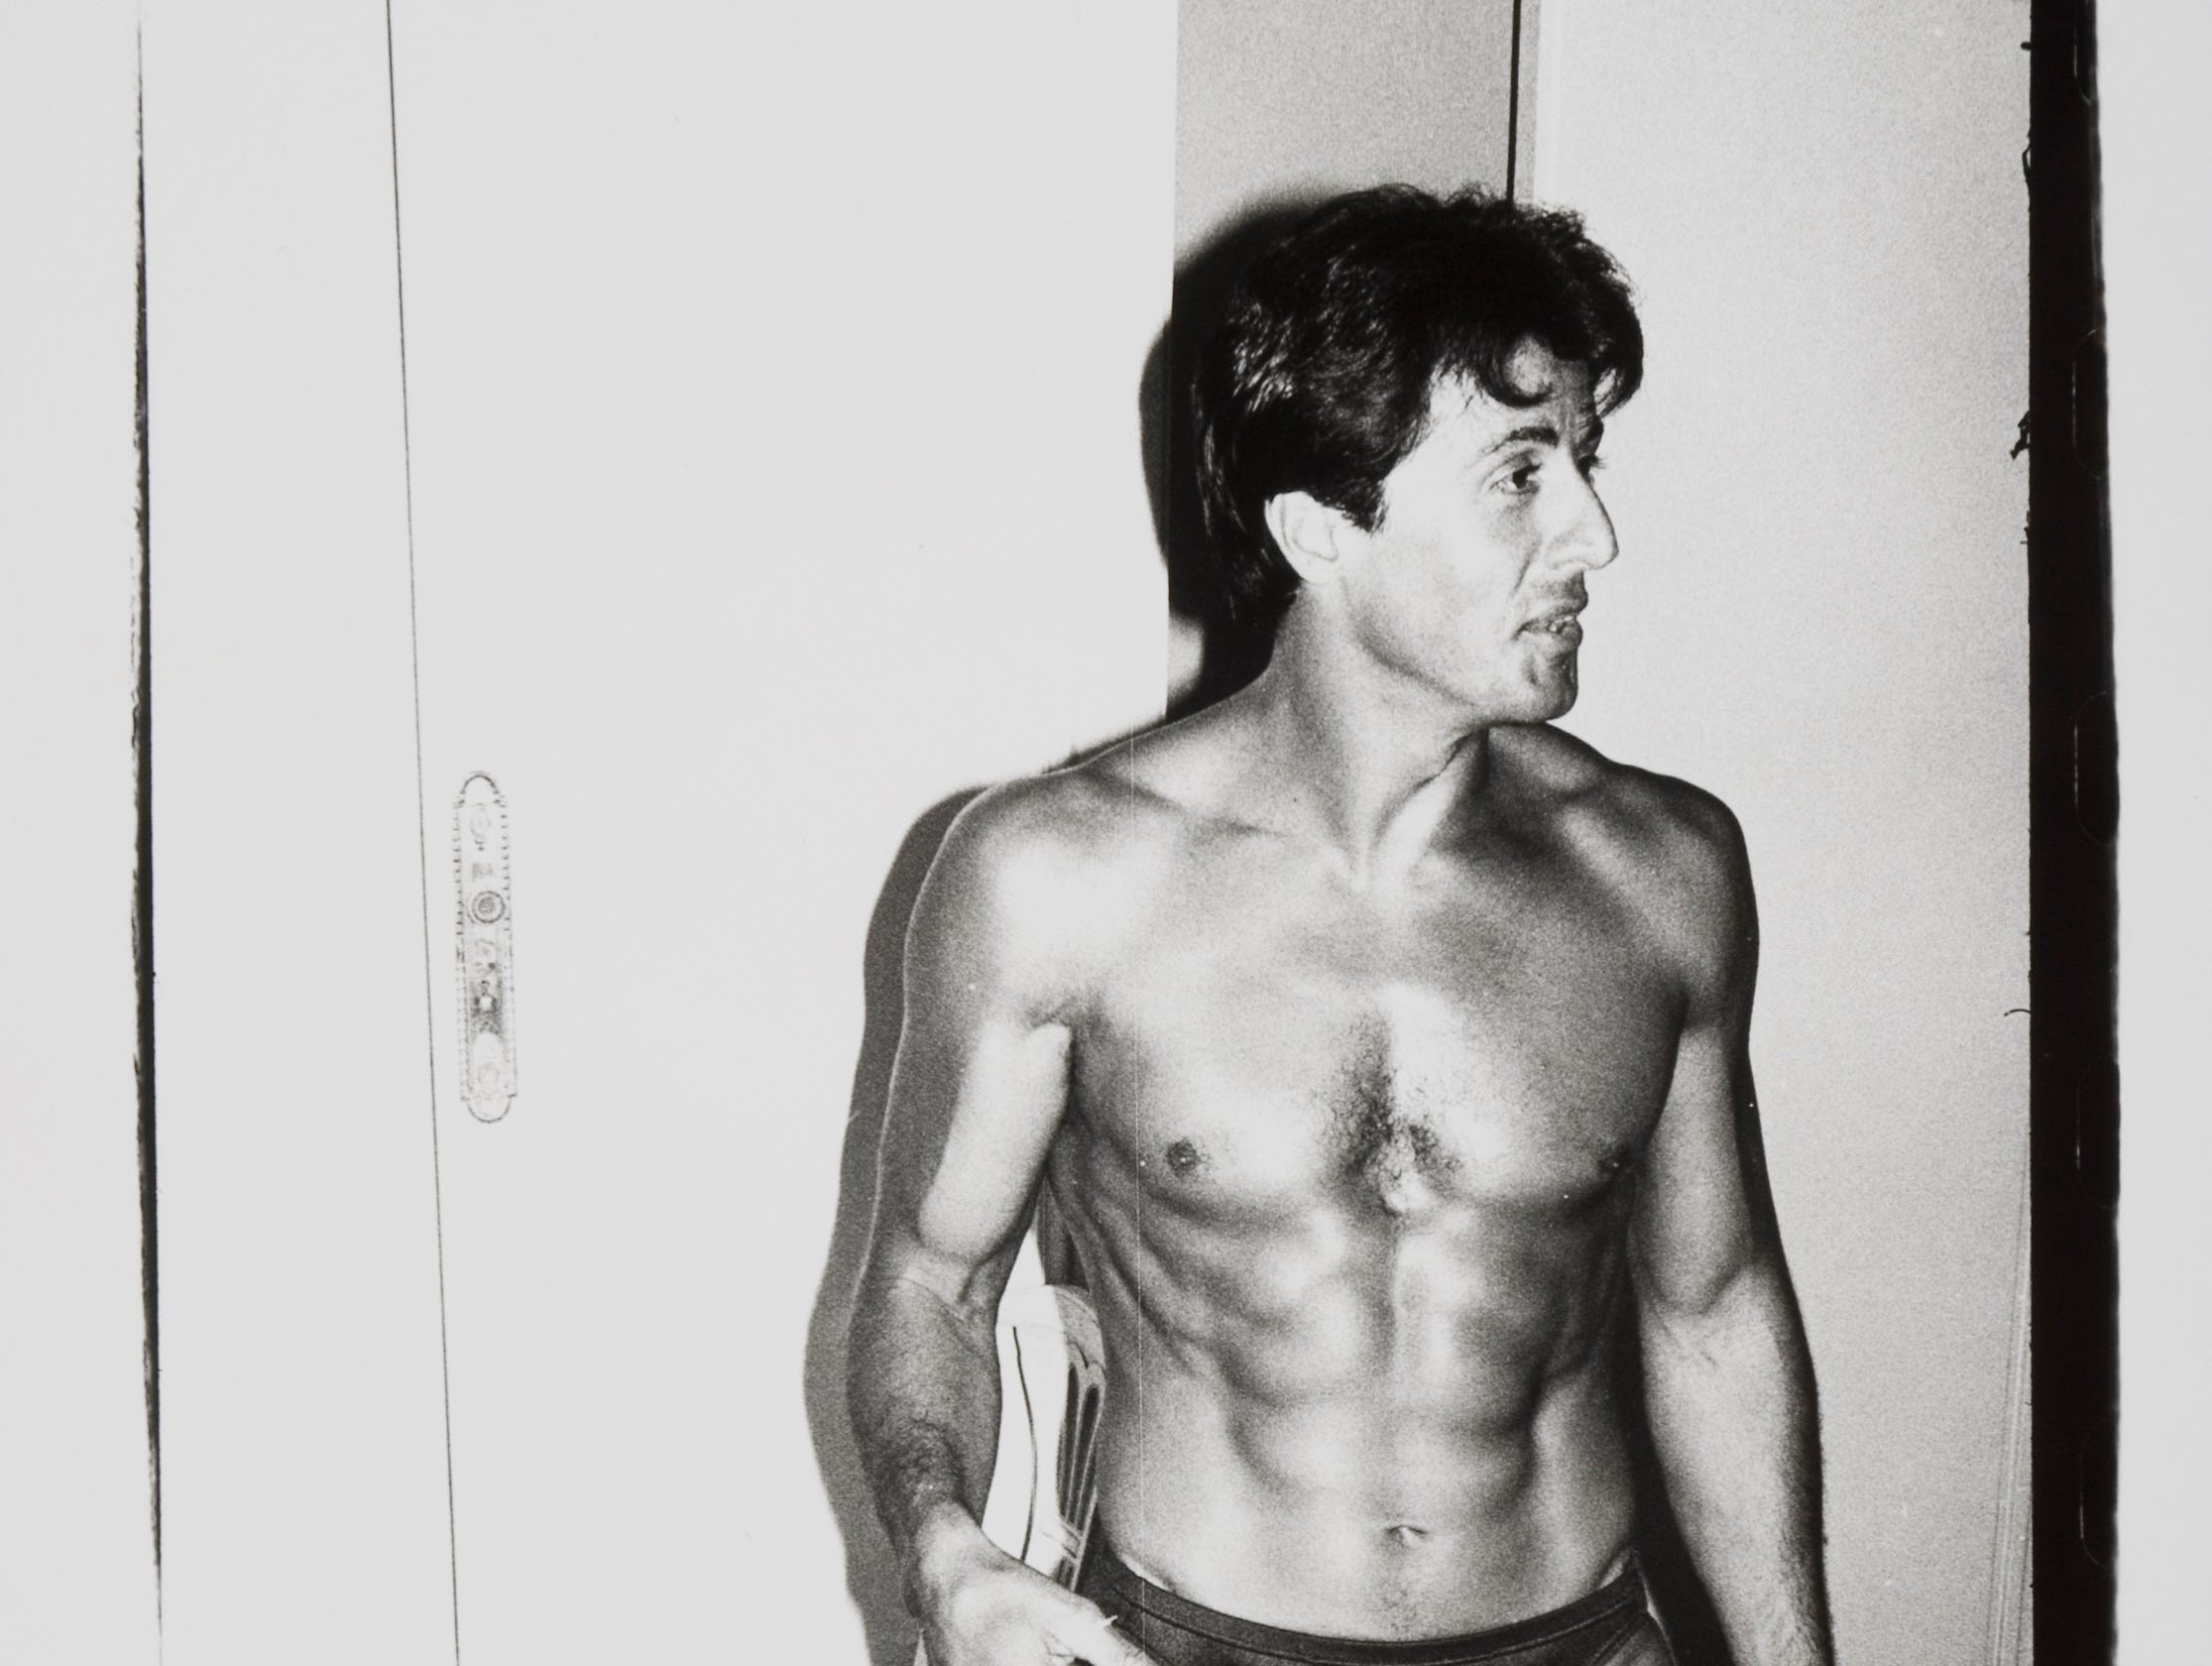 Celebrity Culture: Warhol Andy Warhol Sylvester Stallone, undated  Gelatin silver print  Collection Zimmerli Art Museum at Rutgers  Gift of The Andy Warhol Foundation for the Visual Arts  © 2018 The Andy Warhol Foundation for the Visual Arts, Inc. / Licensed by Artists Rights Society (ARS), New York  Photo Jack Abraham